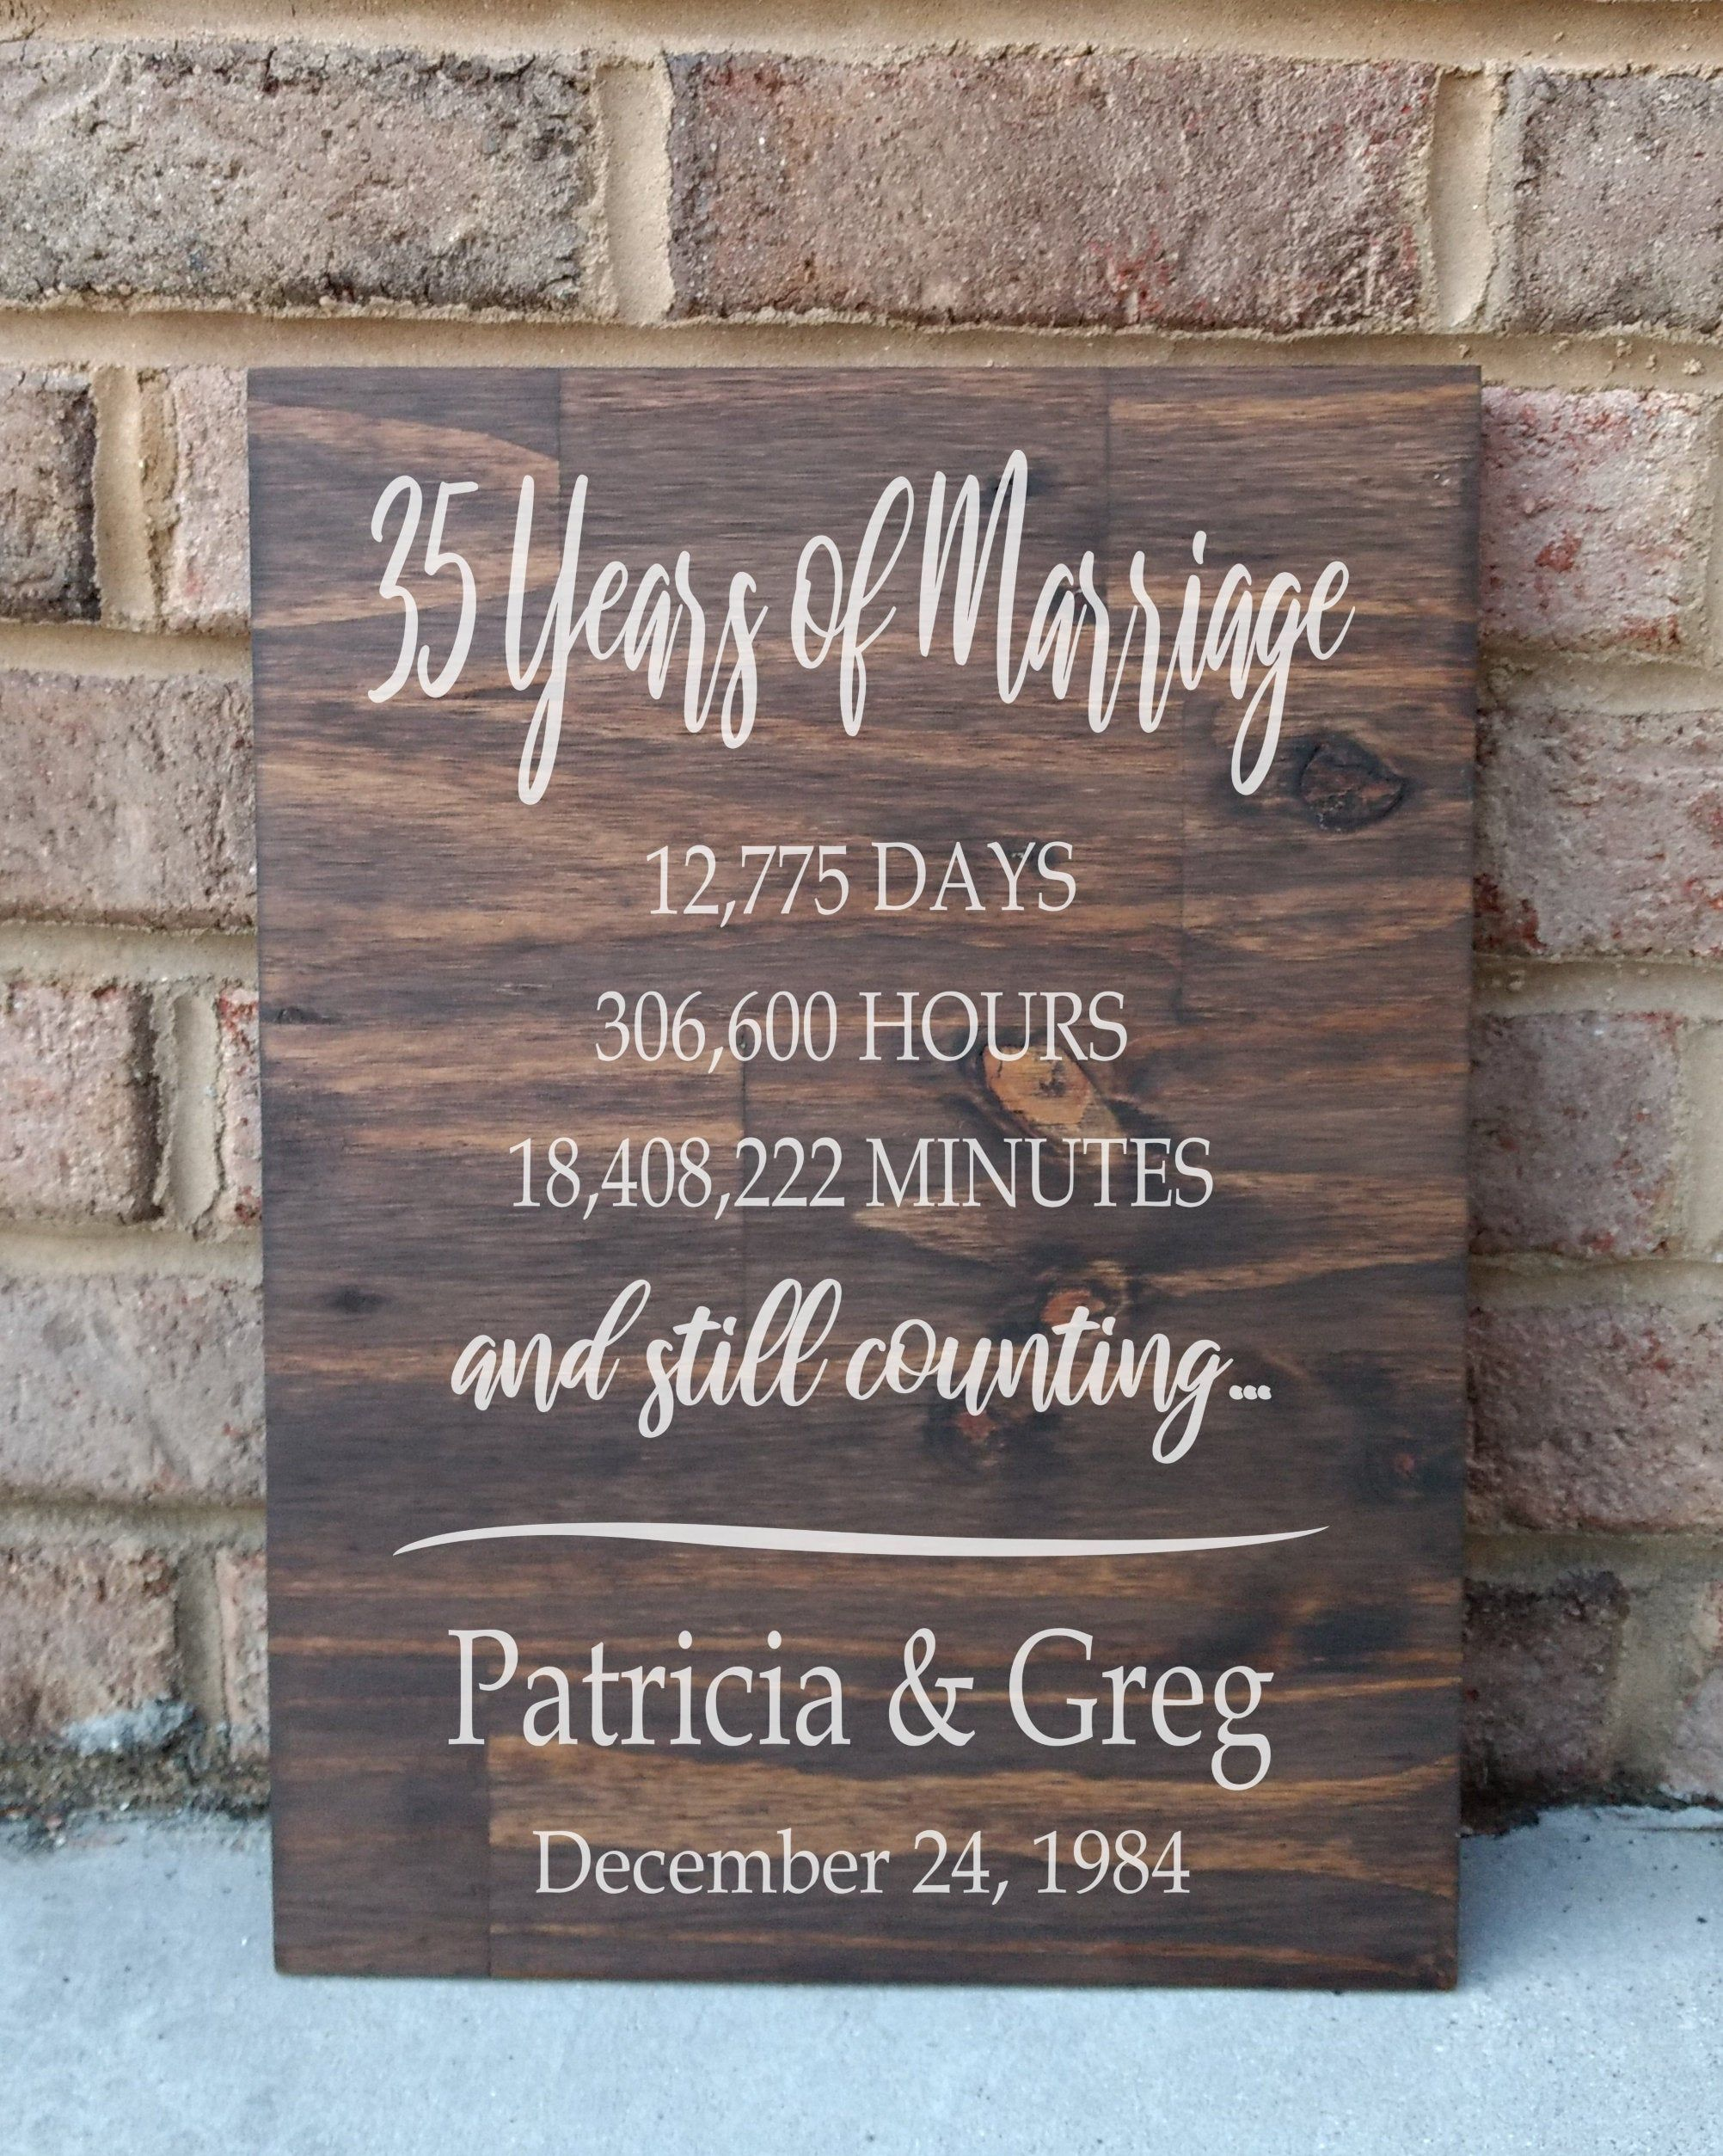 35 Years of Marriage Hand Painted Wood Sign, 35th